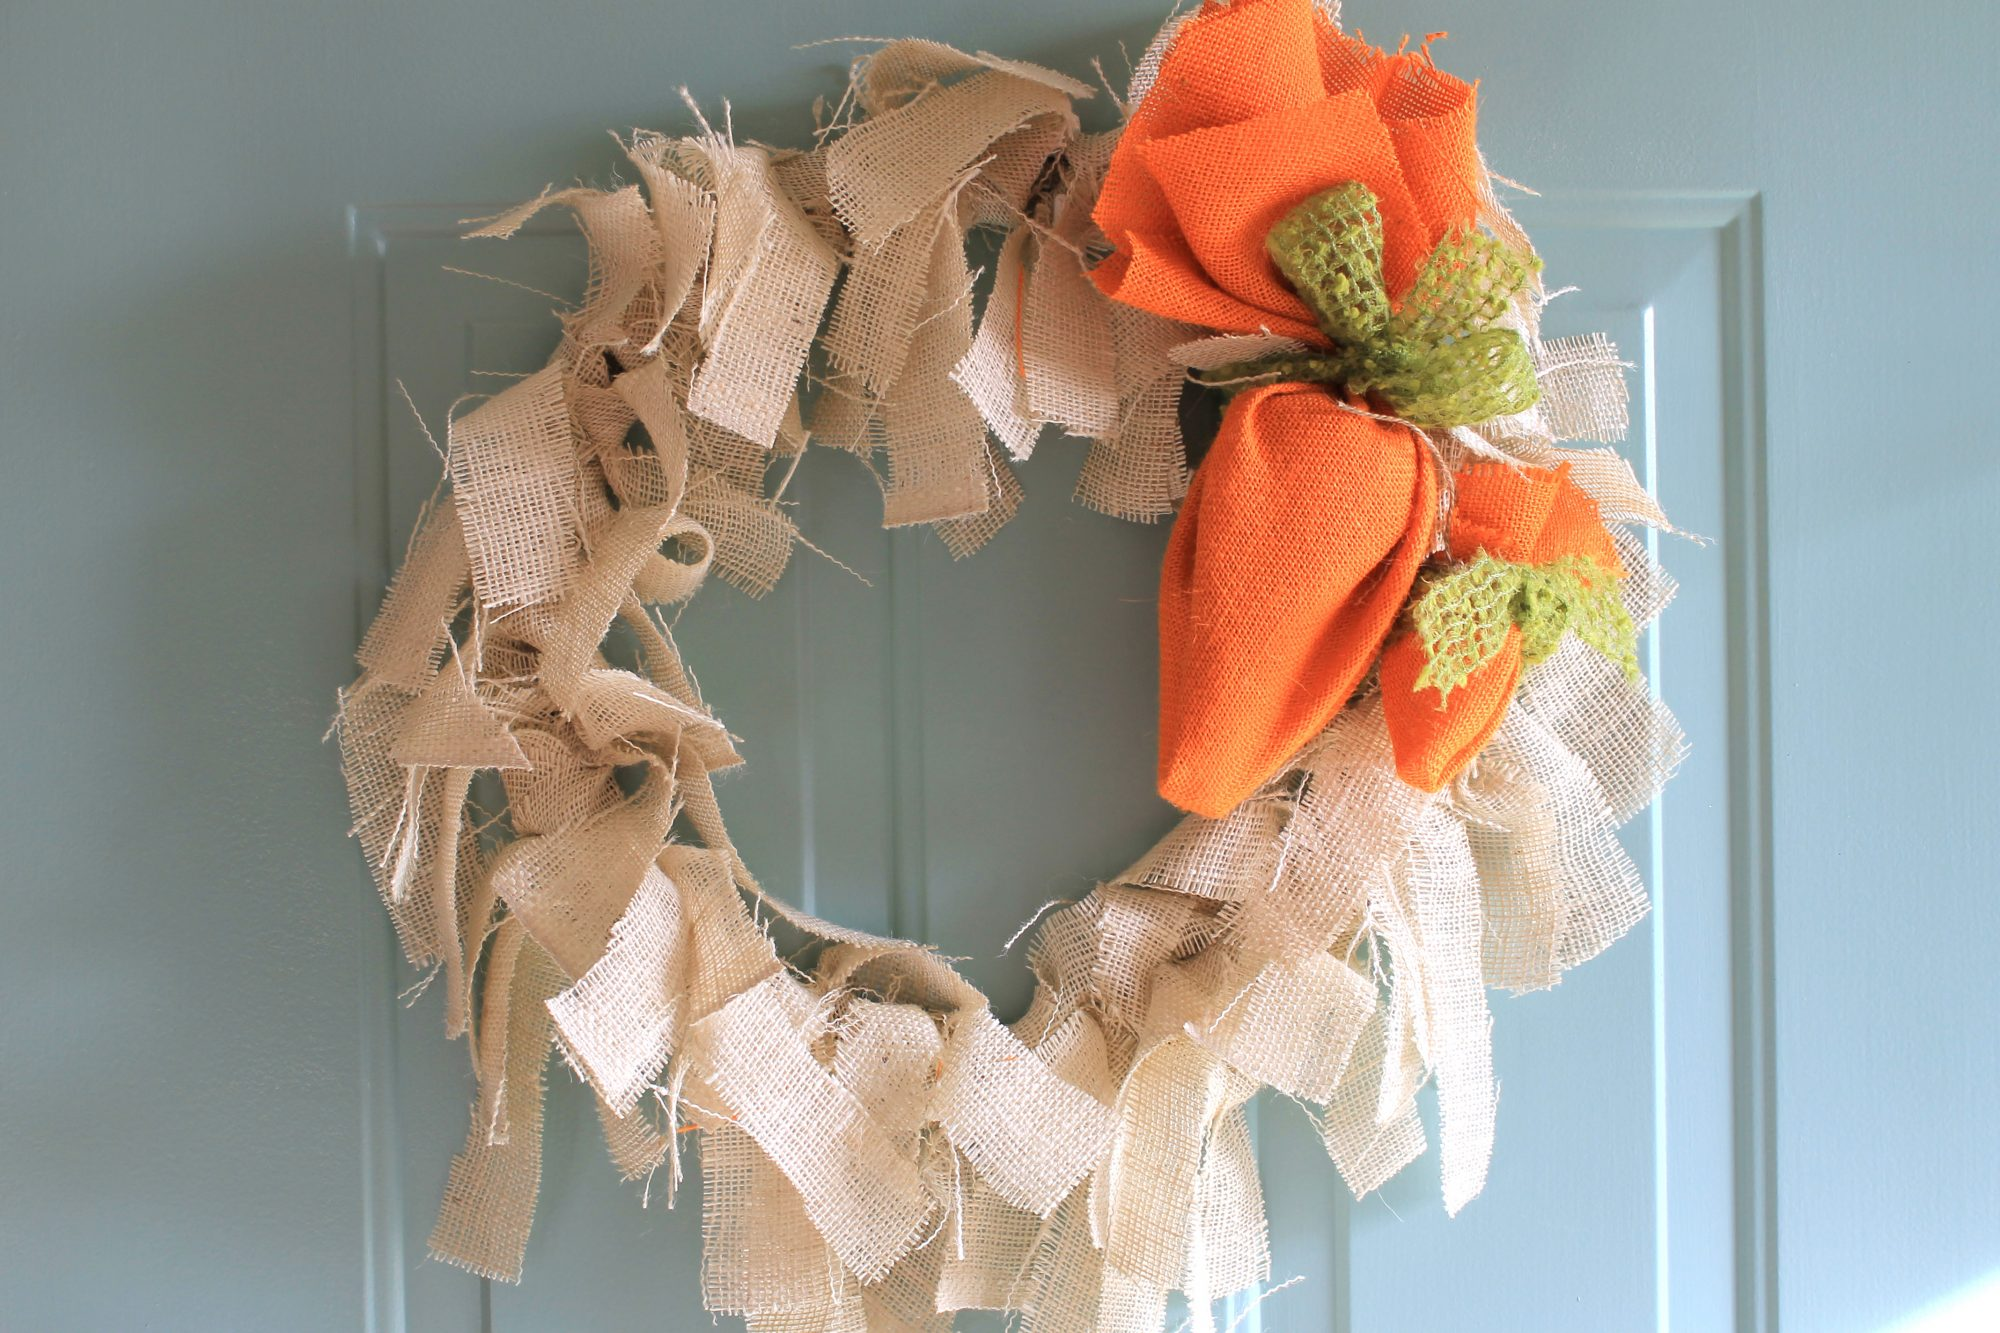 RX_191 Easter Wreaths_Easter Carrot Burlap Wreath